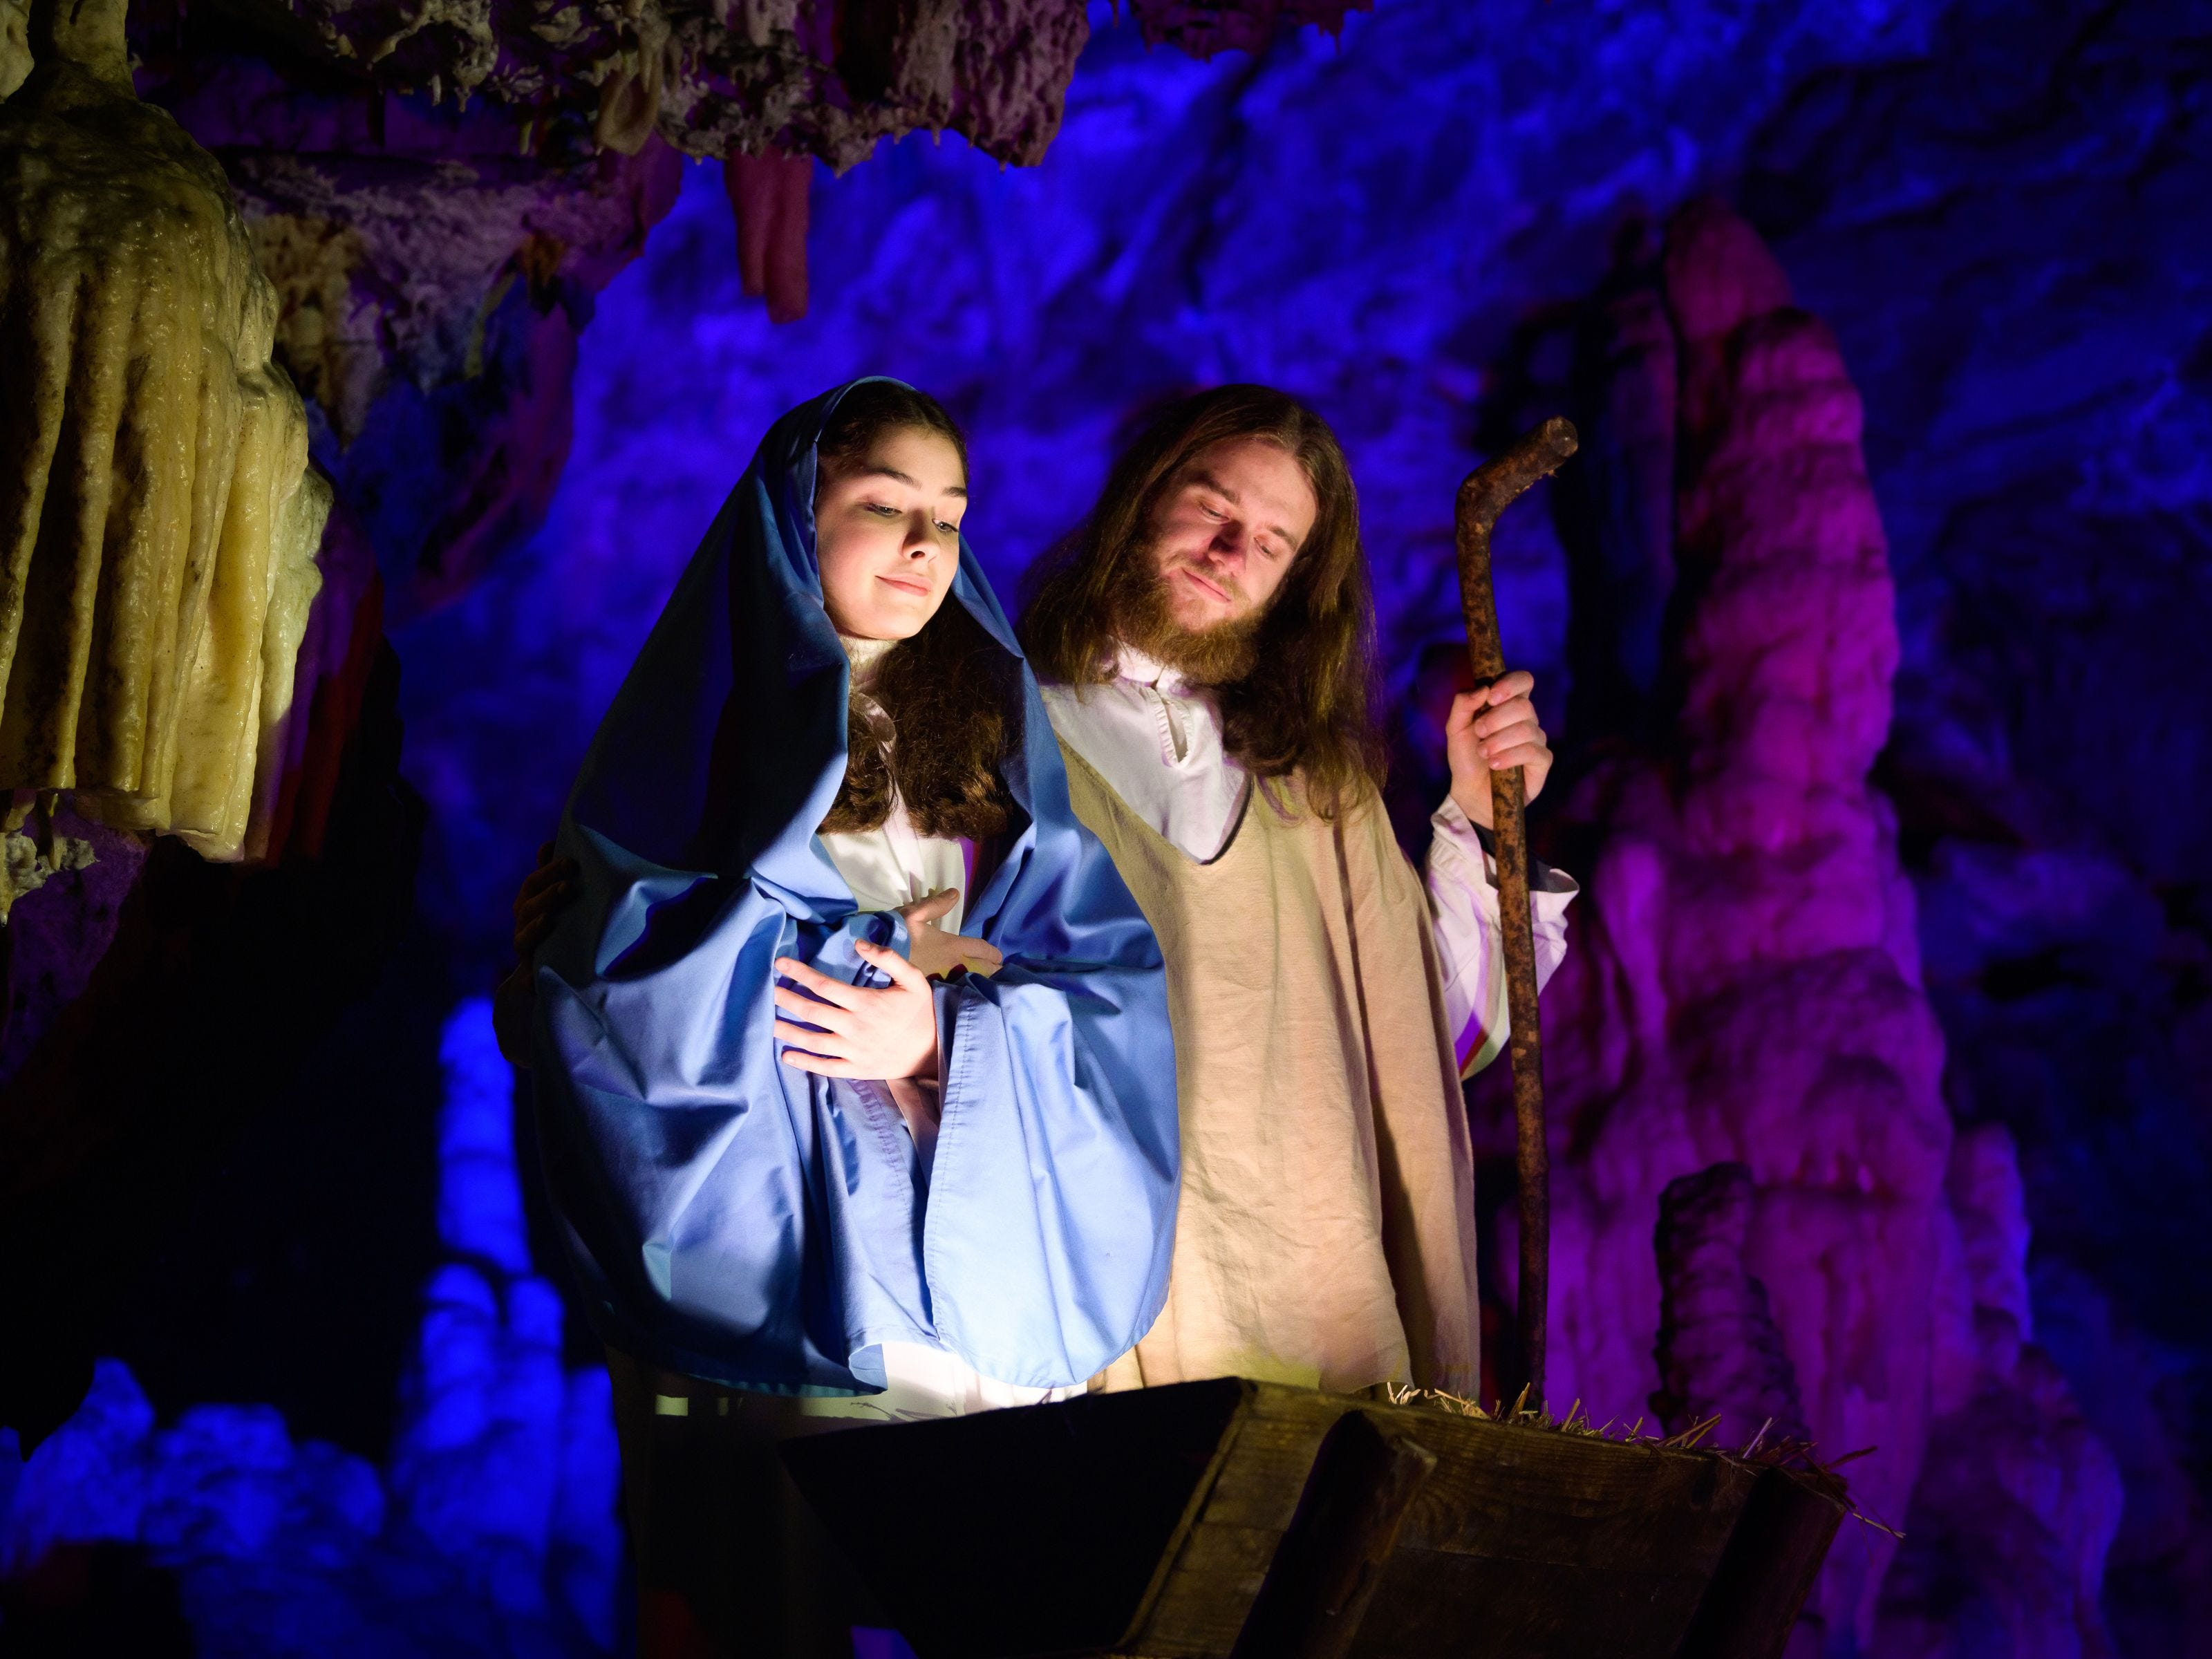 Amateur actors perform as Virgin Mary and Joseph during a Live Nativity Scene set in the Postojna Cave on December 20, 2018 in Postojna.